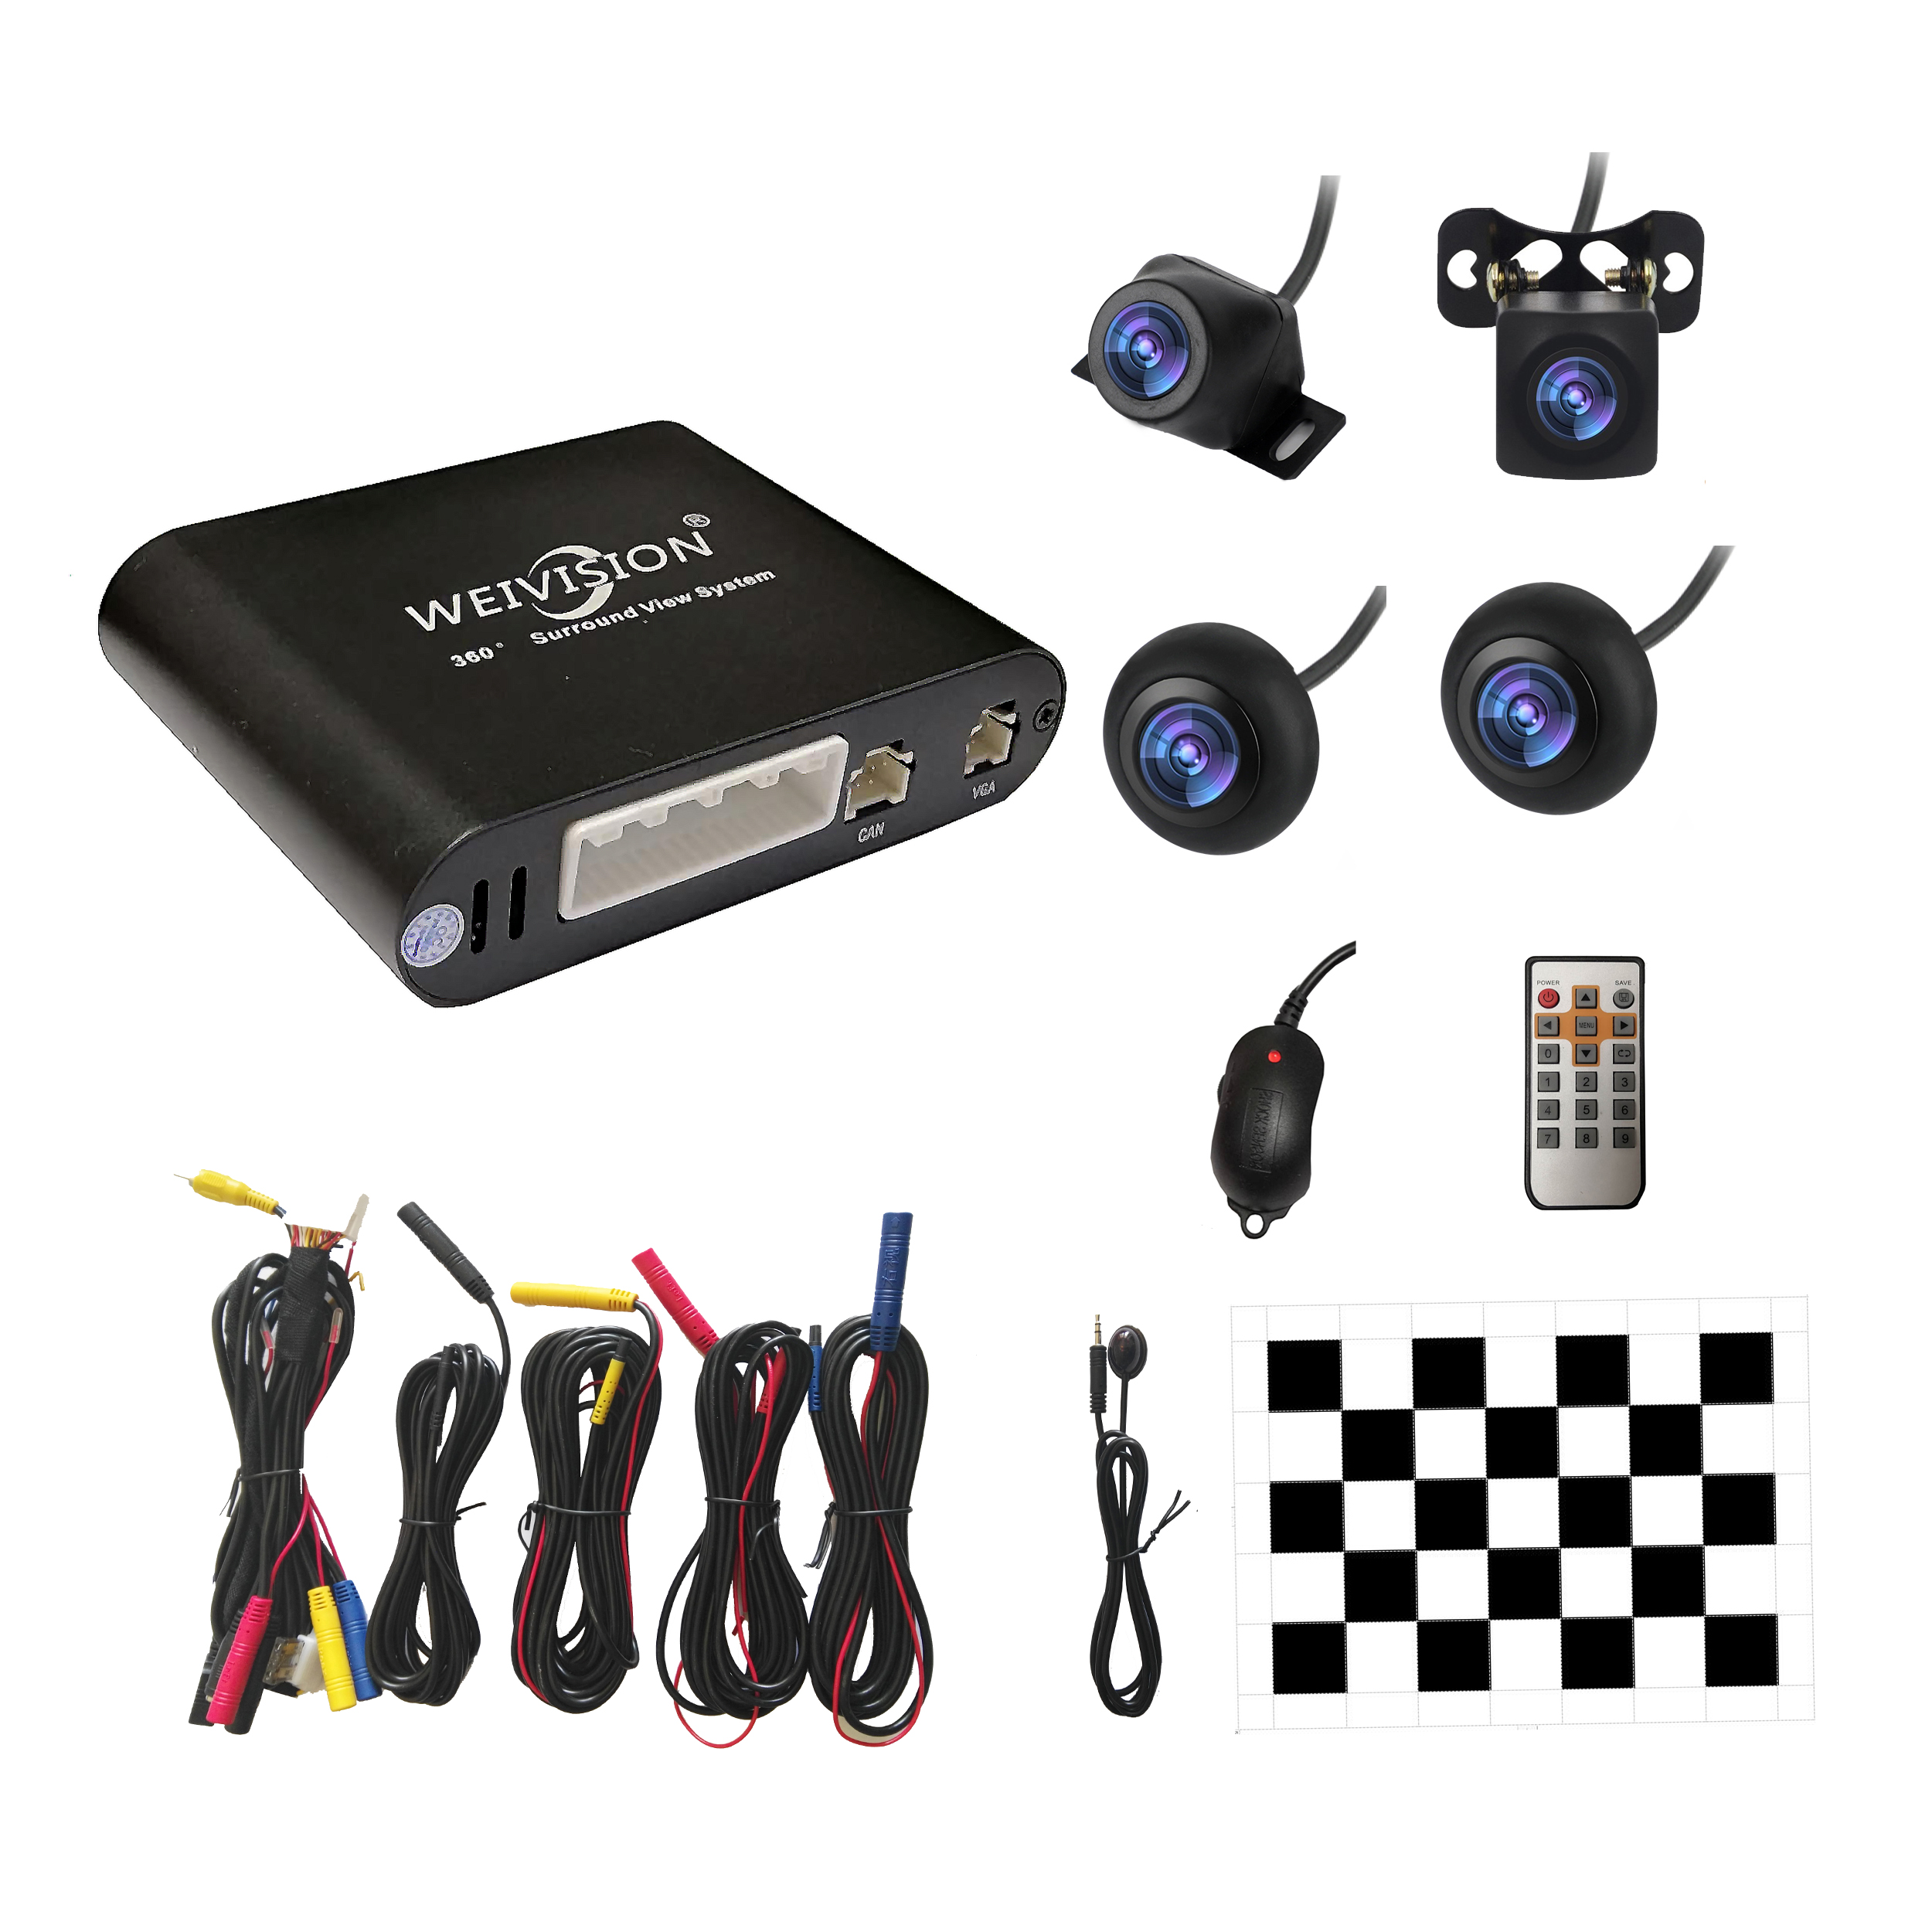 WEIVISION 360 Degree Seamless Bird View Panorama System, All Round View System, Around Parking Car DVR Recording, Gift 8G U Disk